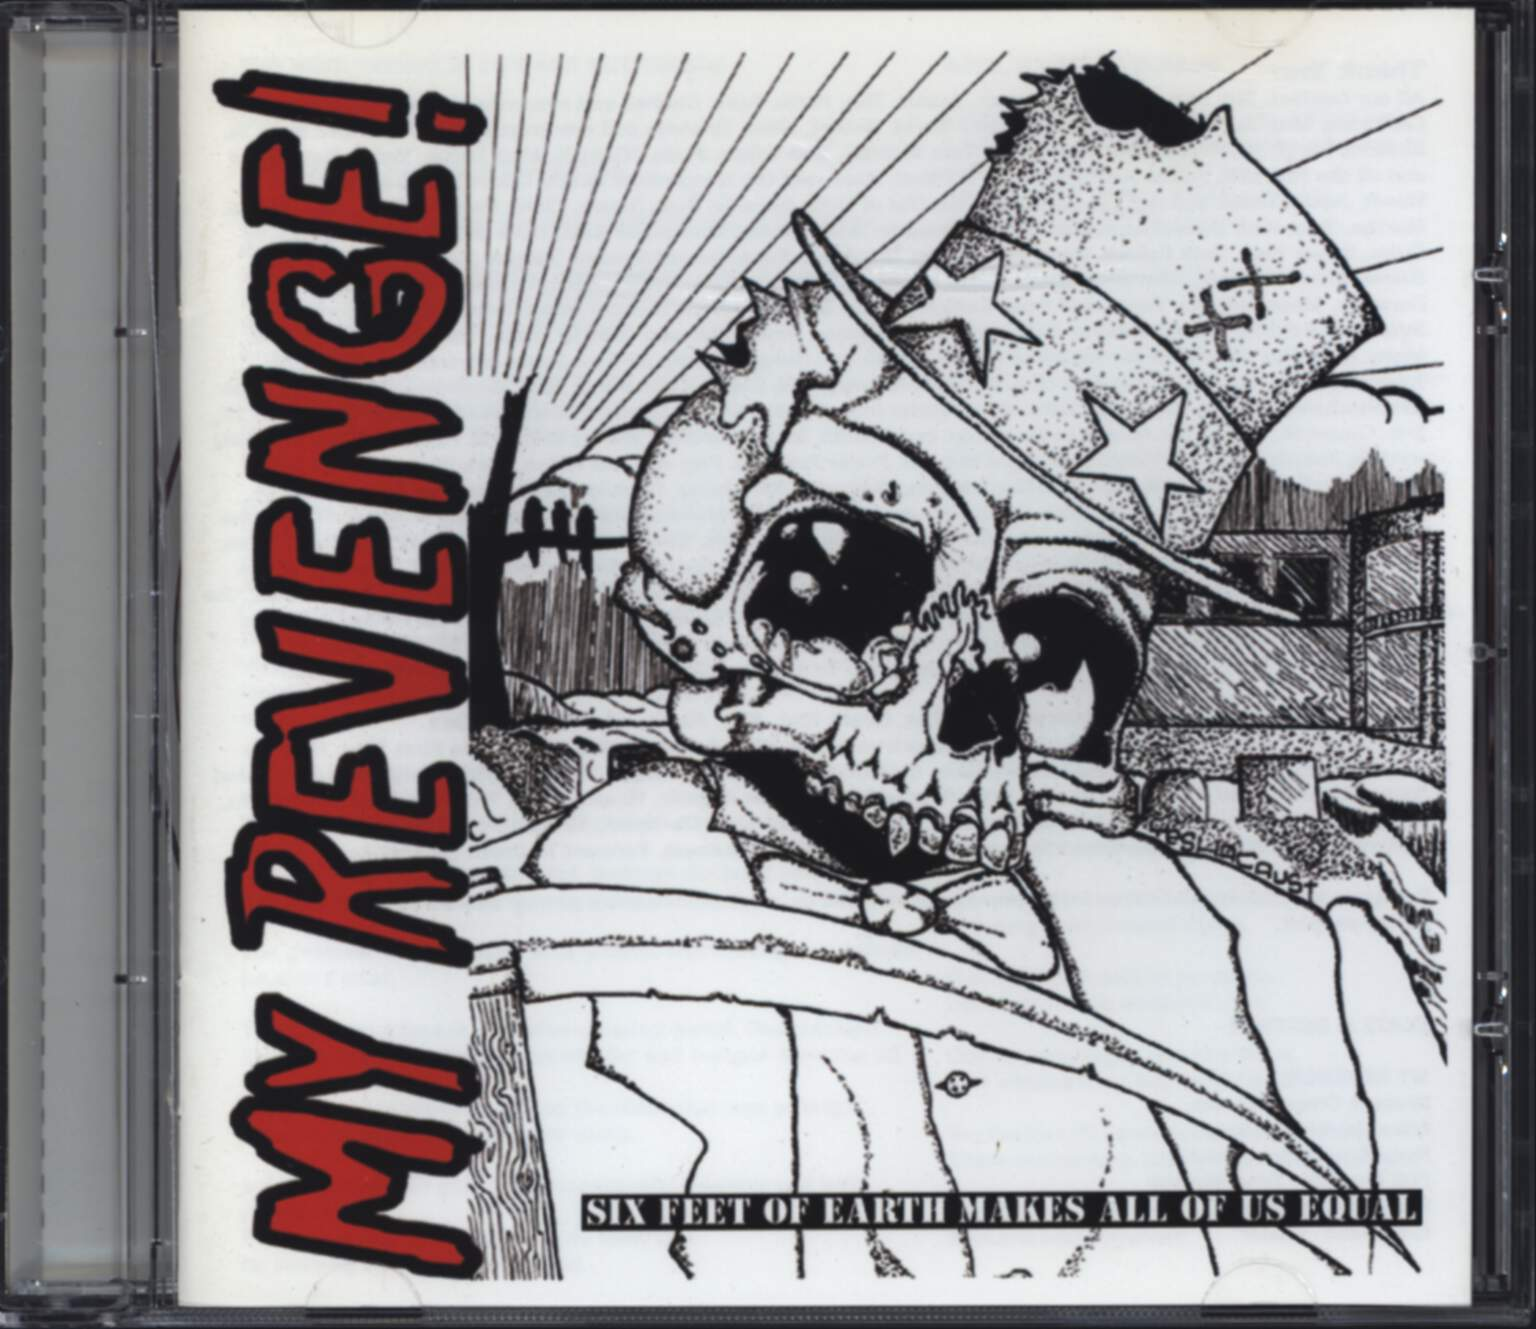 My Revenge: Six Feet of Earth Makes All of Us Equal Audio CD, CD